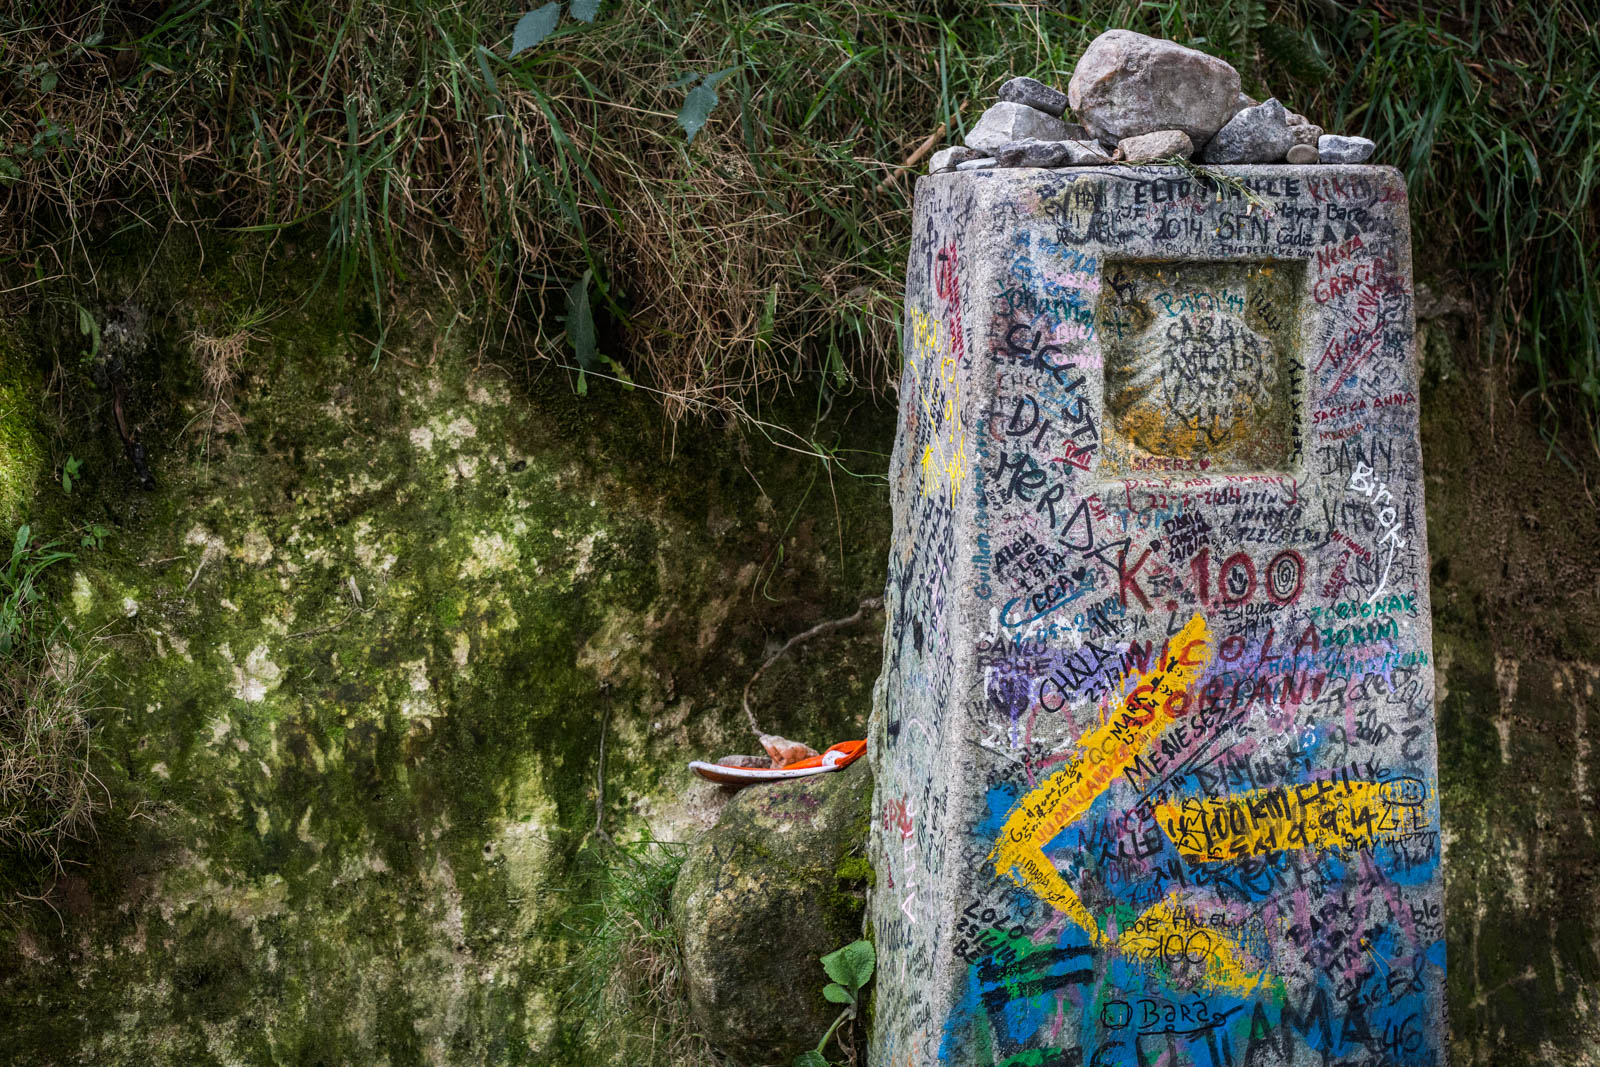 The Real Camino Milestone... and an example of how you shouldn't ruin historic pieces